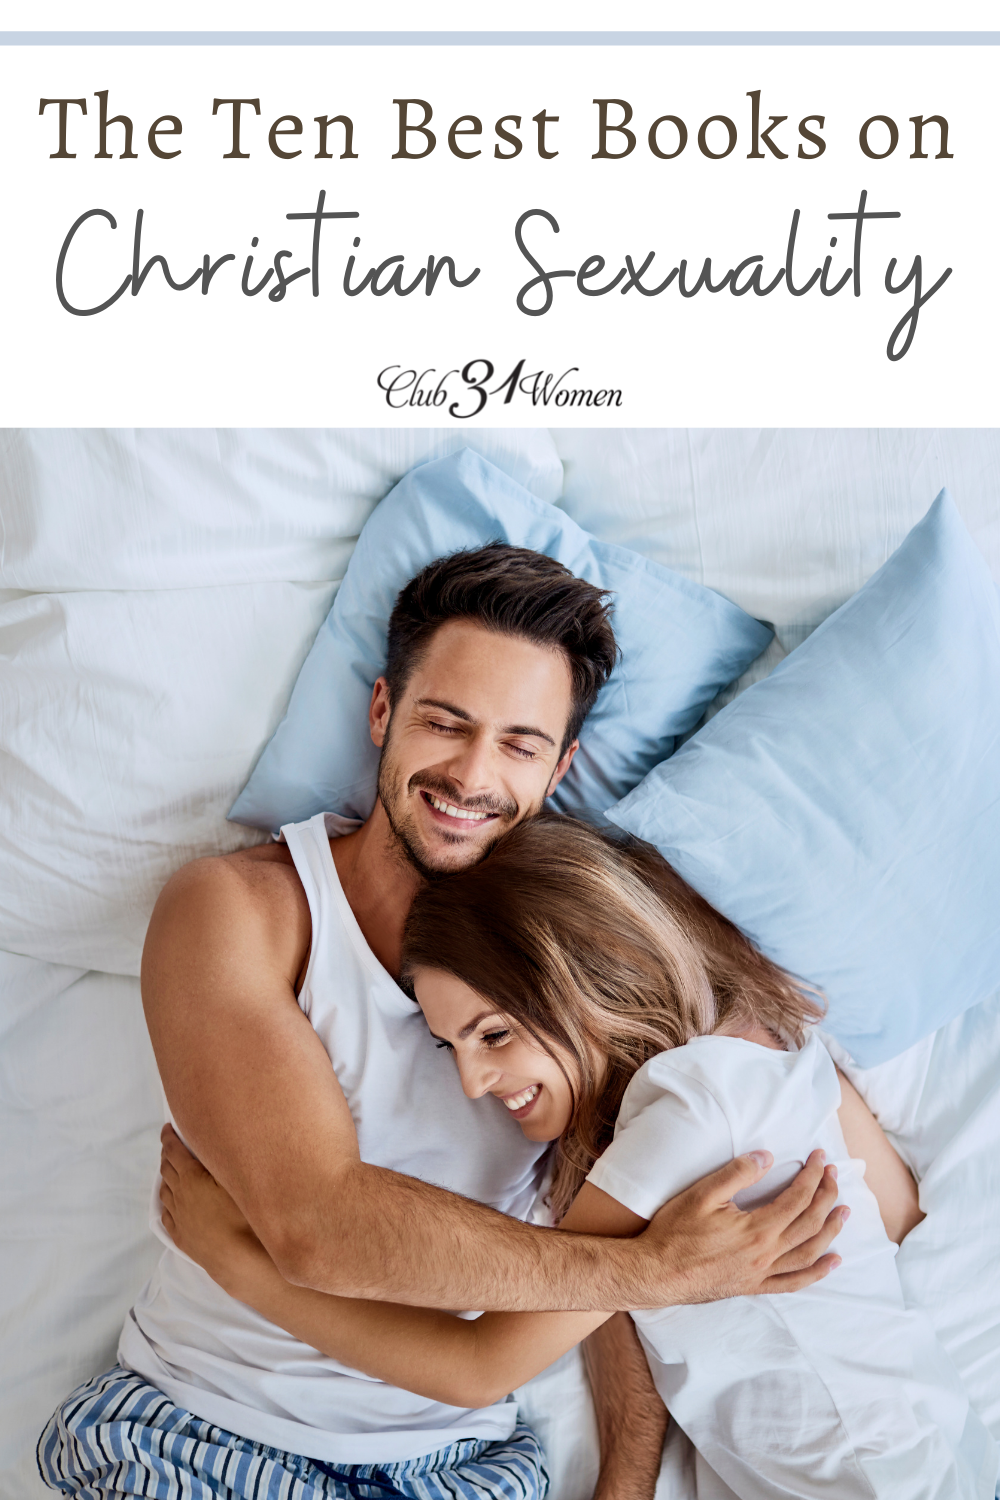 It can be difficult to find a biblical approach to sexuality in modern books and media. Here are some of the best Christian resources on sexuality. via @Club31Women